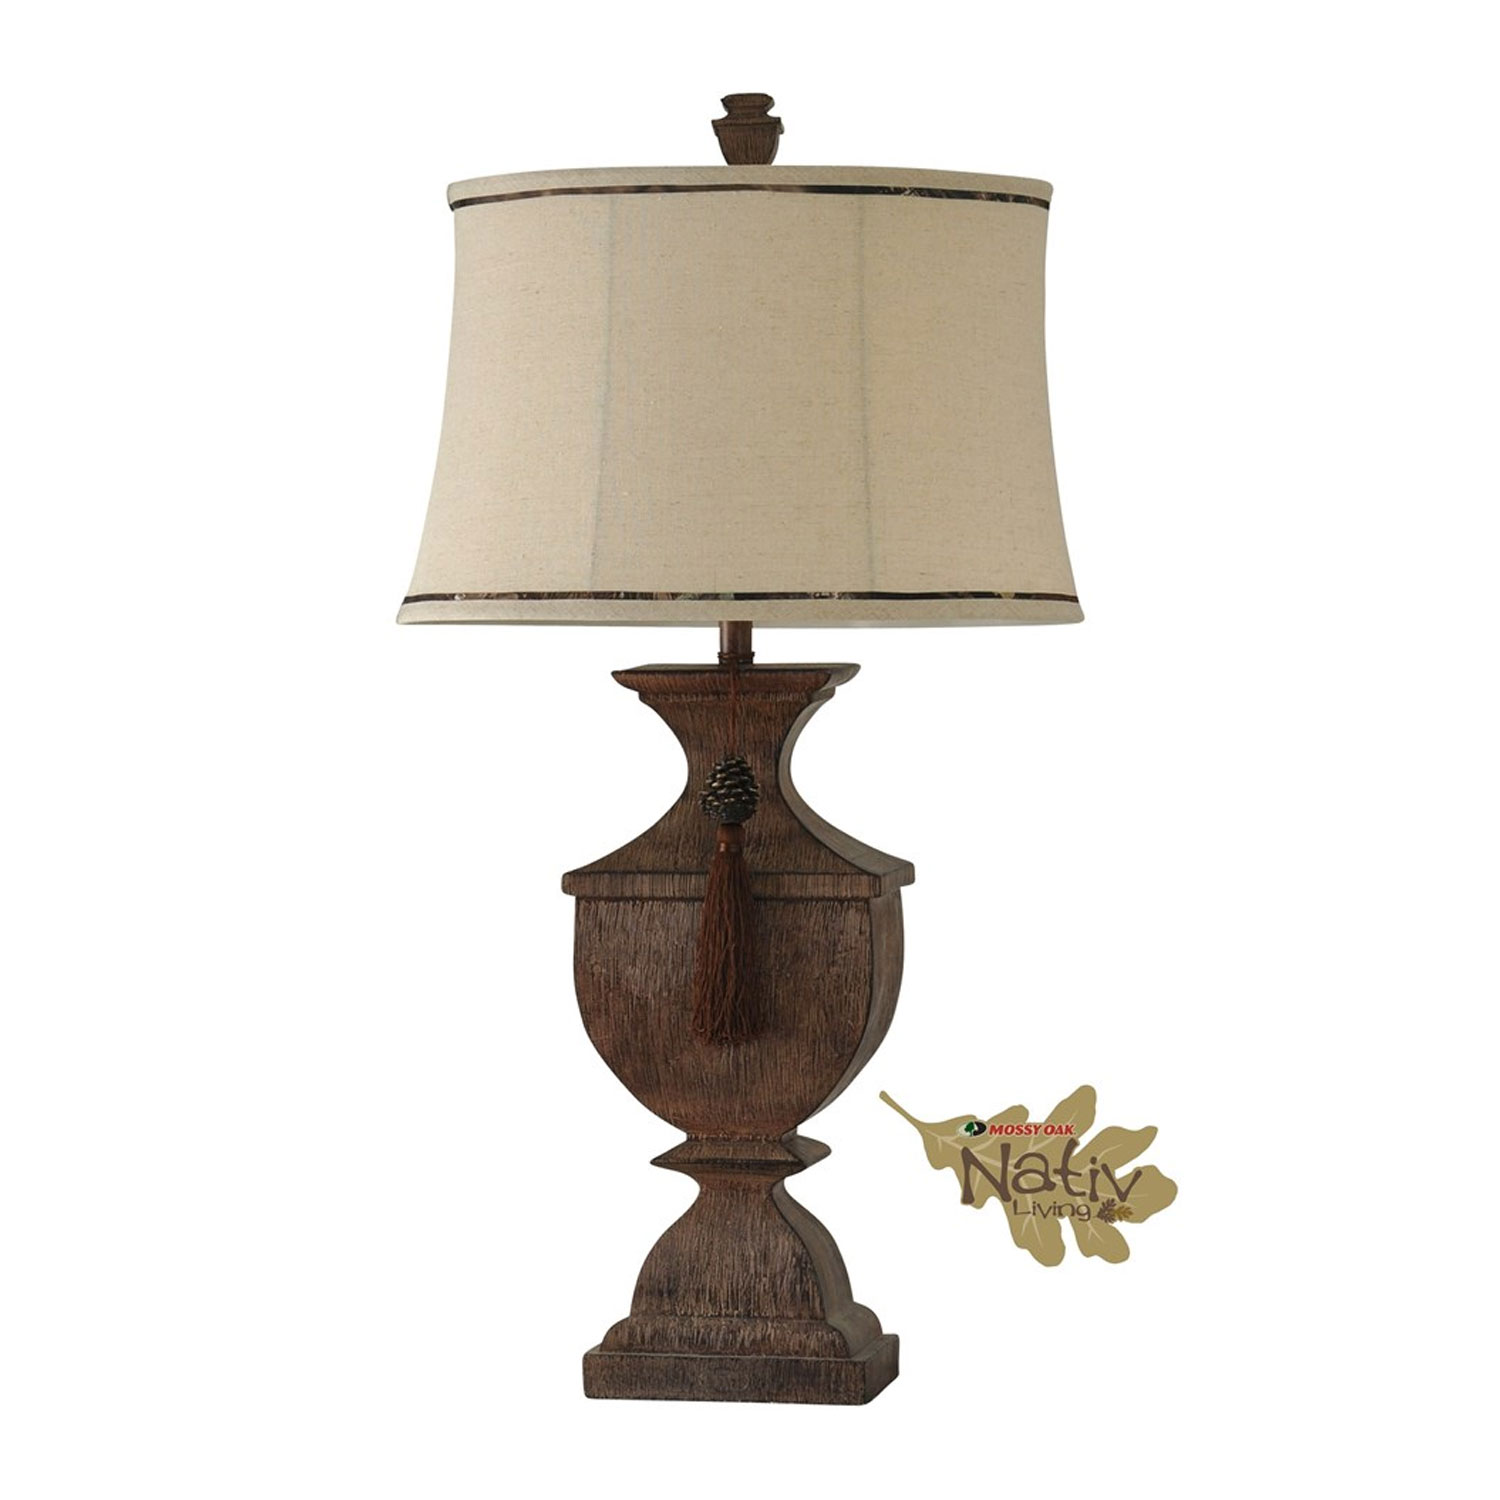 Stylecraft MO311285 Mossy Oak Table Lamp Hope Home